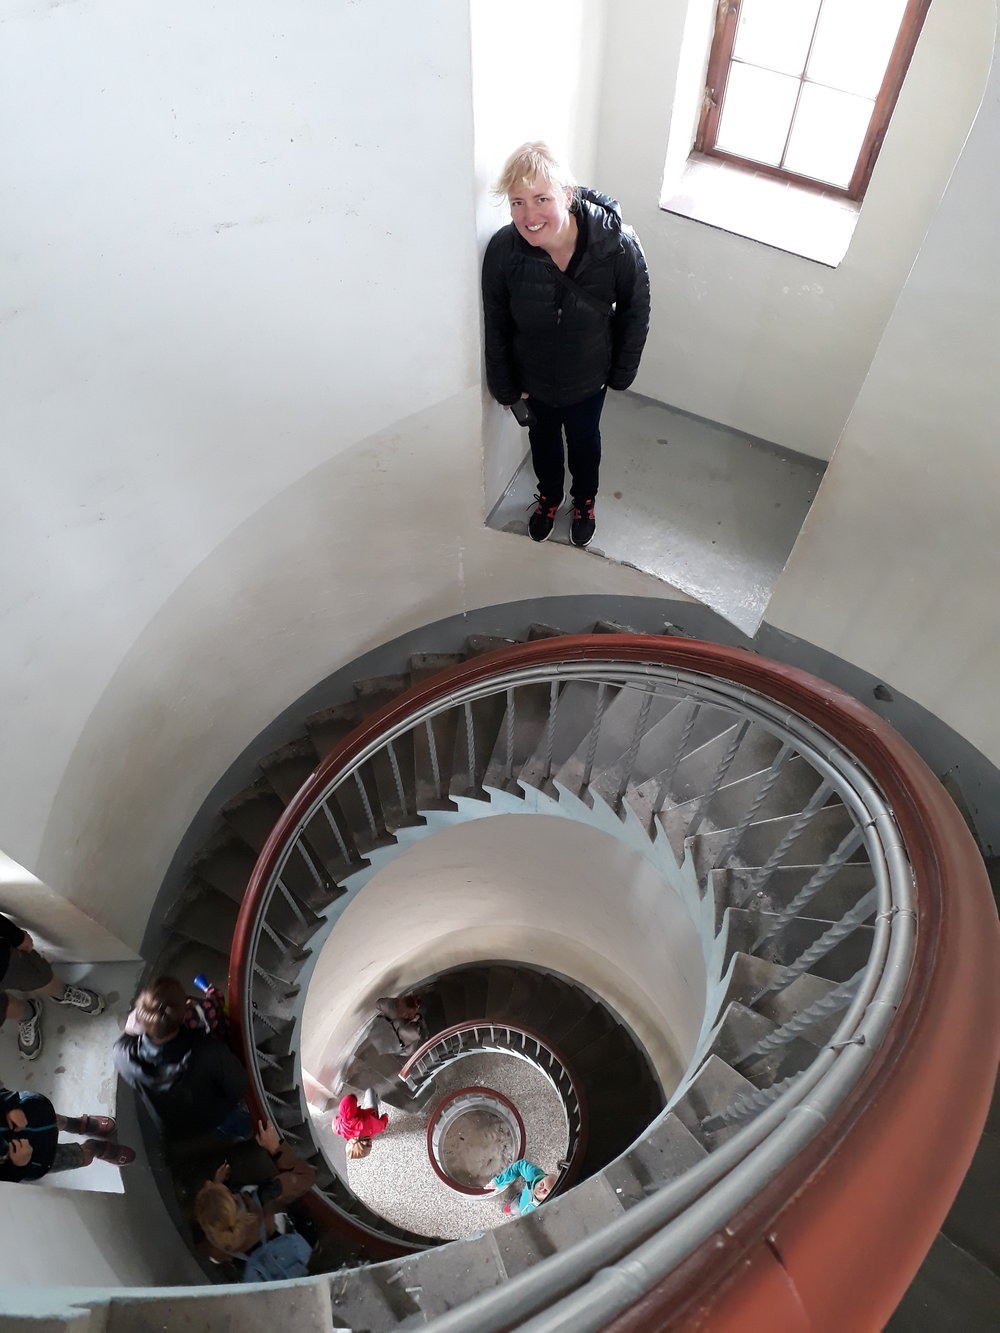 Mette took a photo of me on the way down through the lighthouse interior.